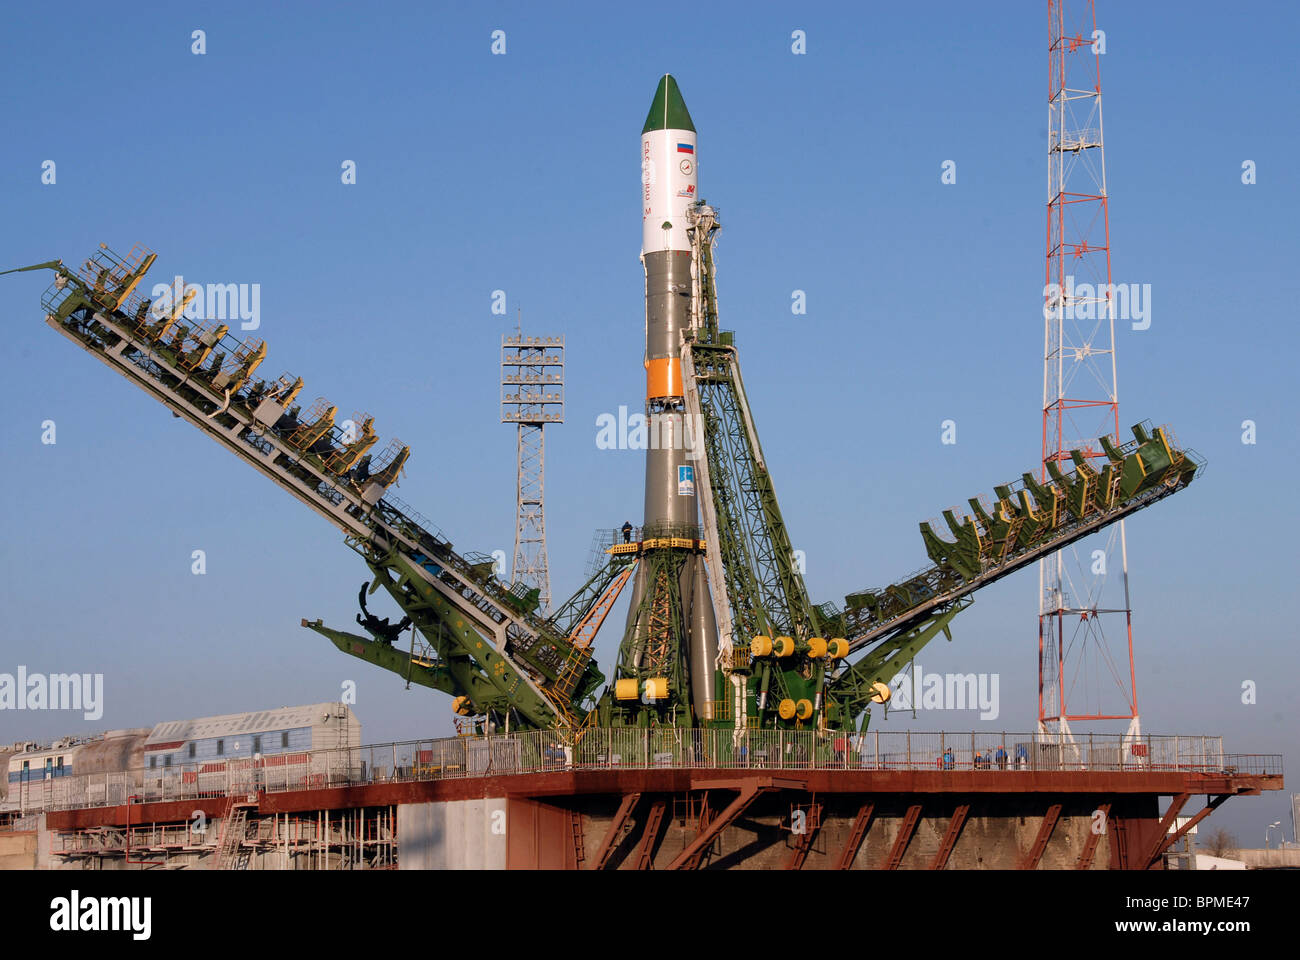 Soyuz-U space rocket with Progress М-01М cargo vehicle to be launched from Baikonur Cosmodrome - Stock Image